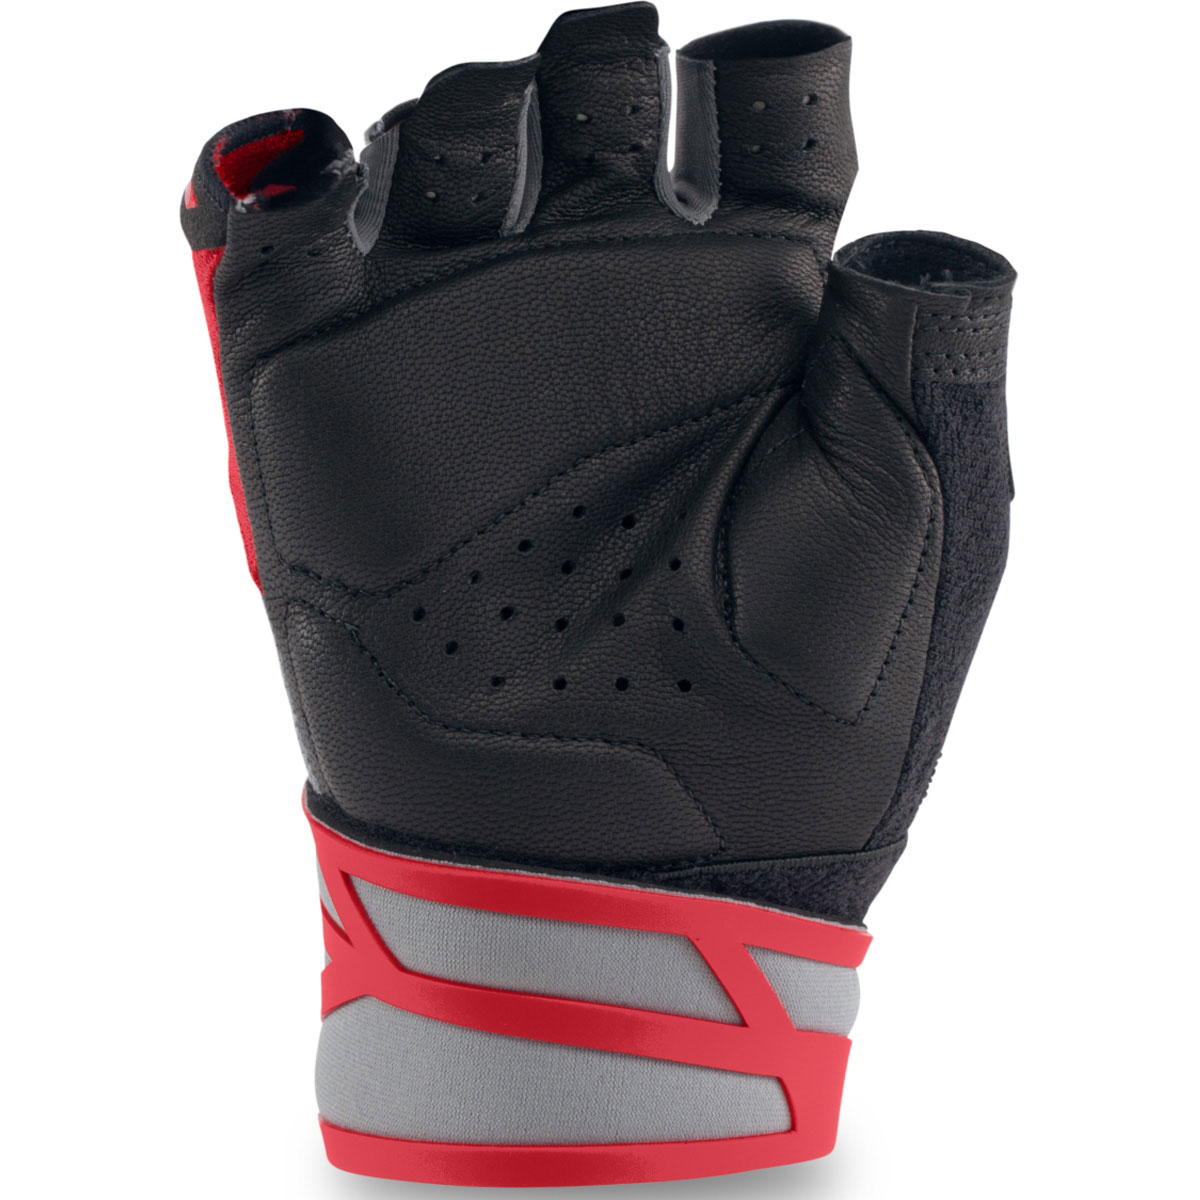 Under Armour 2015 Mens Ua Renegade Training Gloves Support: Under Armour 2017 Mens UA Resistor Training Gloves Support